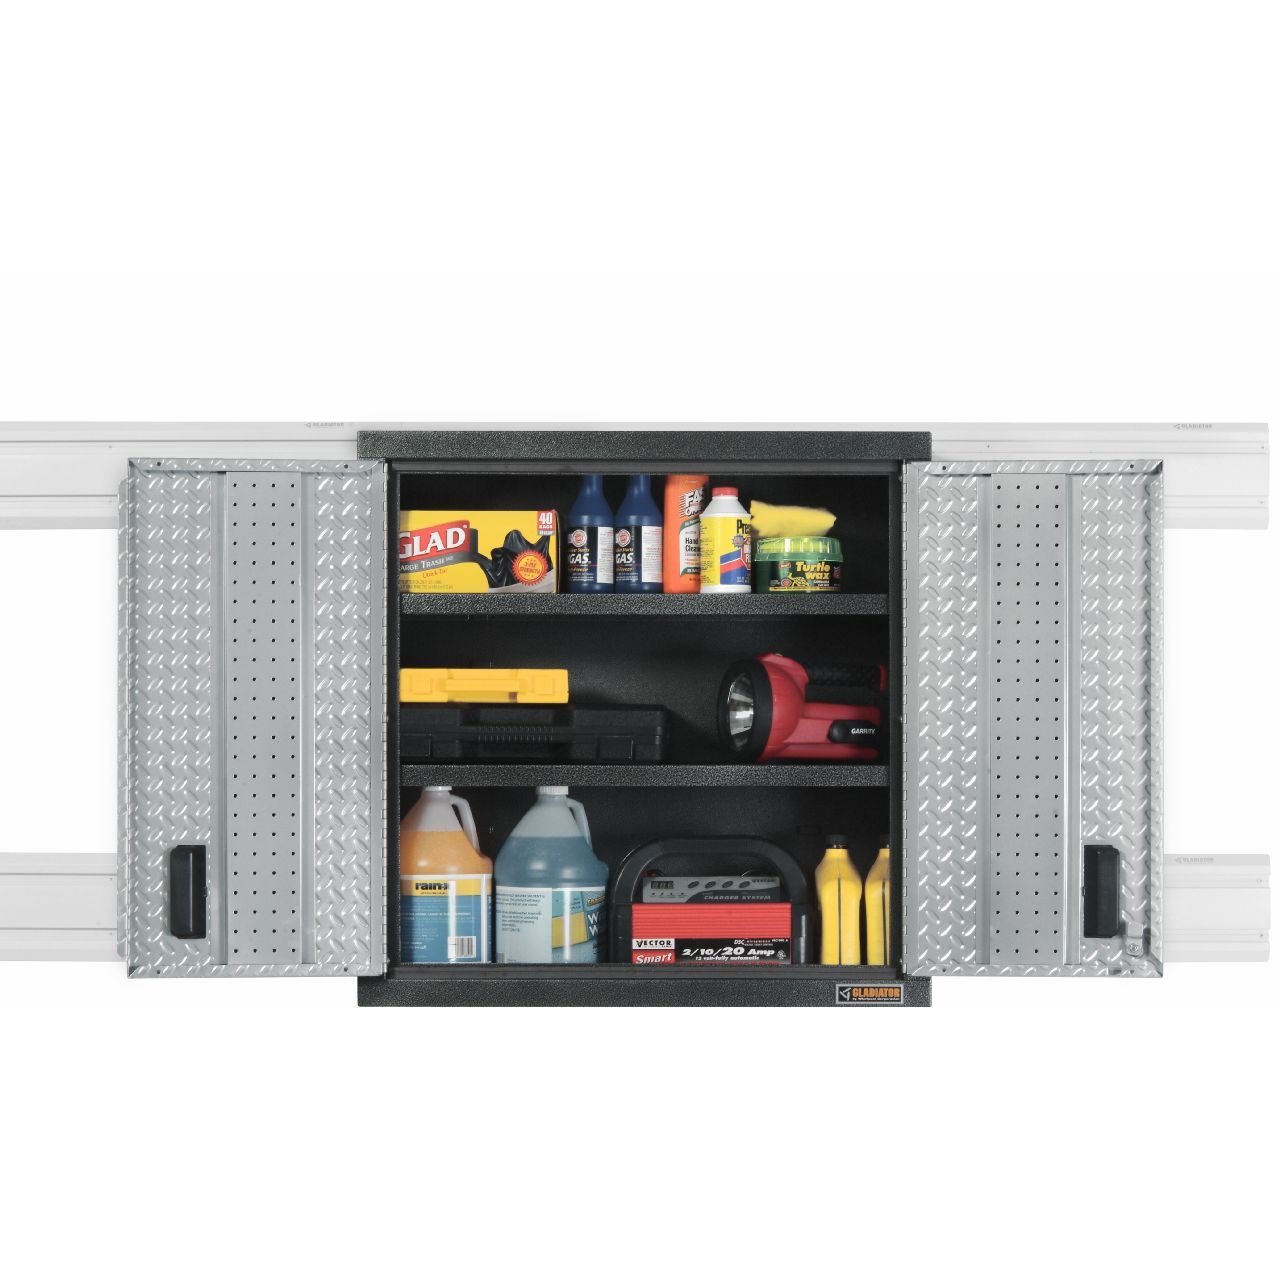 fresh interior com size solutions of best bench gladiator storage depot shelving full garage photos small large home bathgroundspath